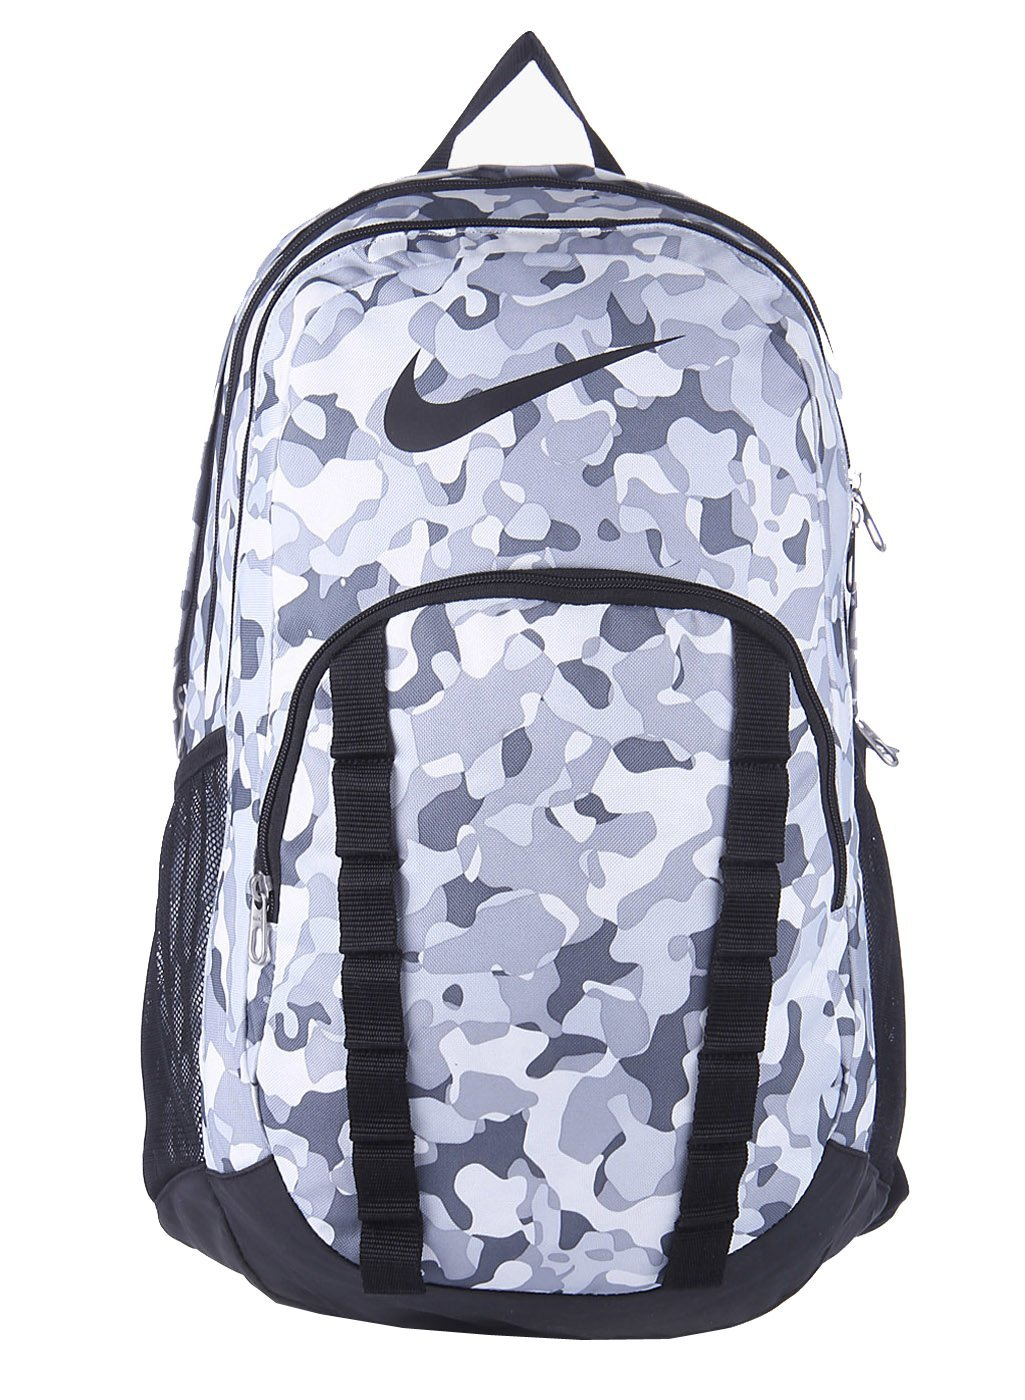 Buy Nike Brasilia 7 Graphic Backpack XL Grey Camo in Cheap Price on ... 6cea2bd80